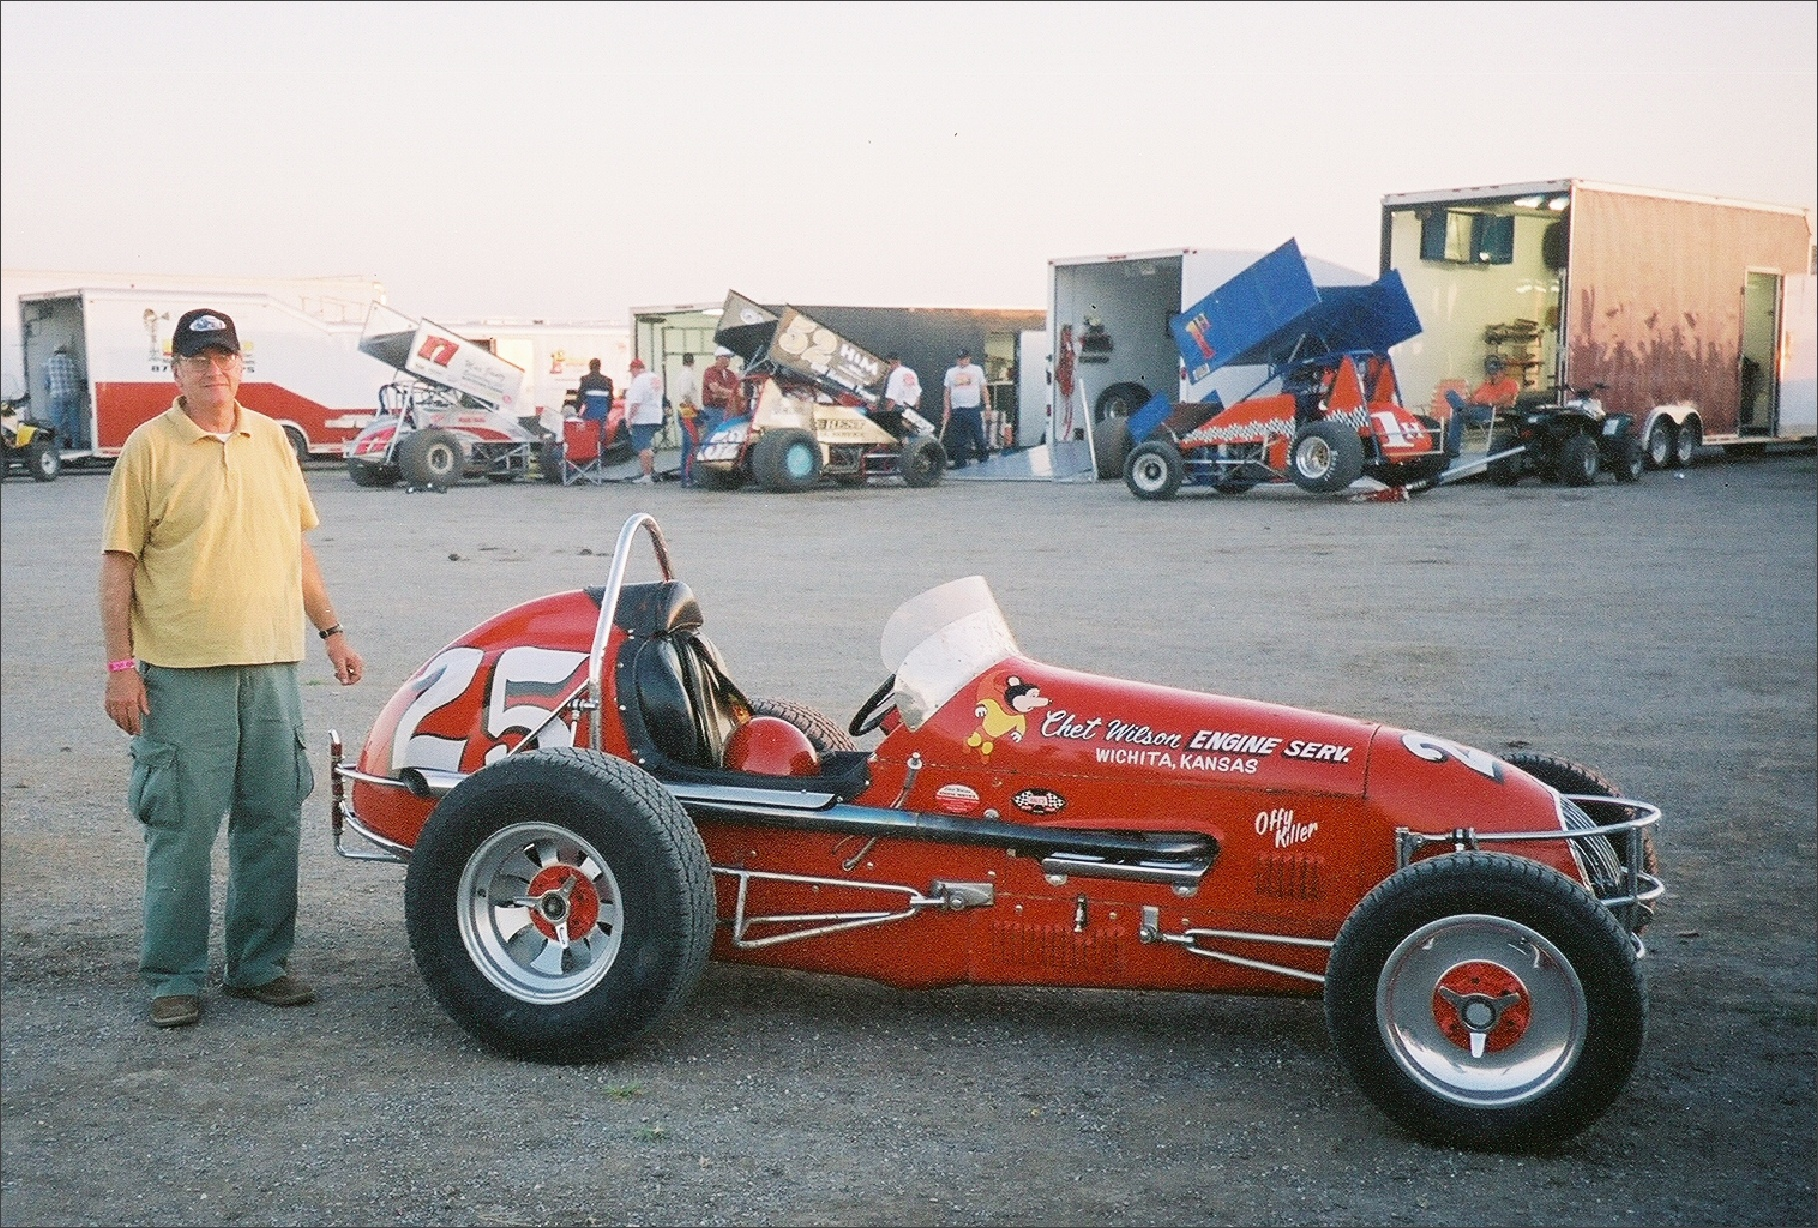 [photograph: Offy Killer, No. 25 Sprint Car Jetmore Motorplex,  Evert Issac Memorial Vintage Car Race, July 30, 2005, Jetmore, KS, with George Laughead.]